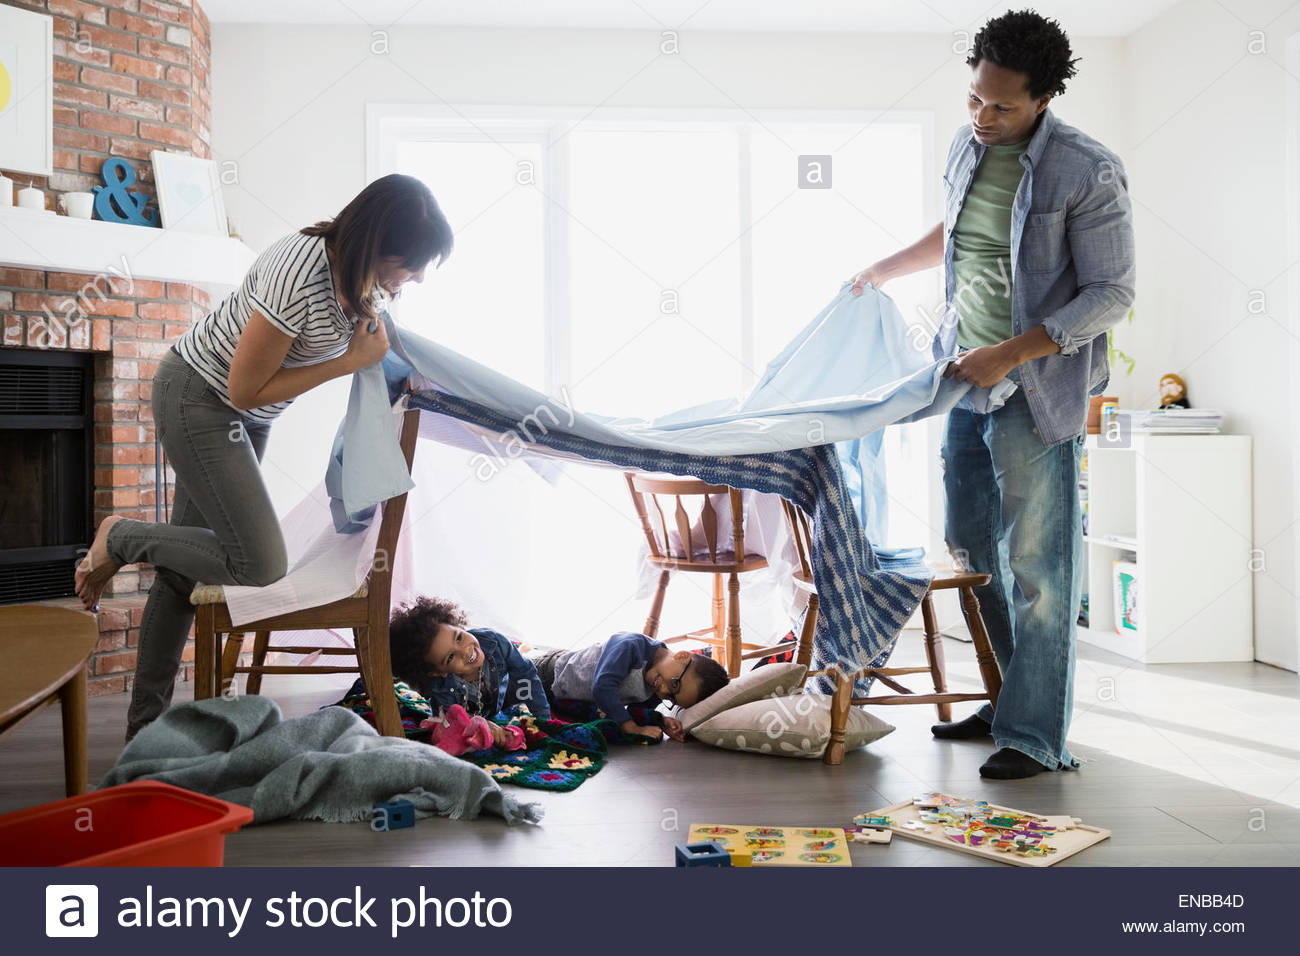 Parents creating fort over sleeping children - Stock Image